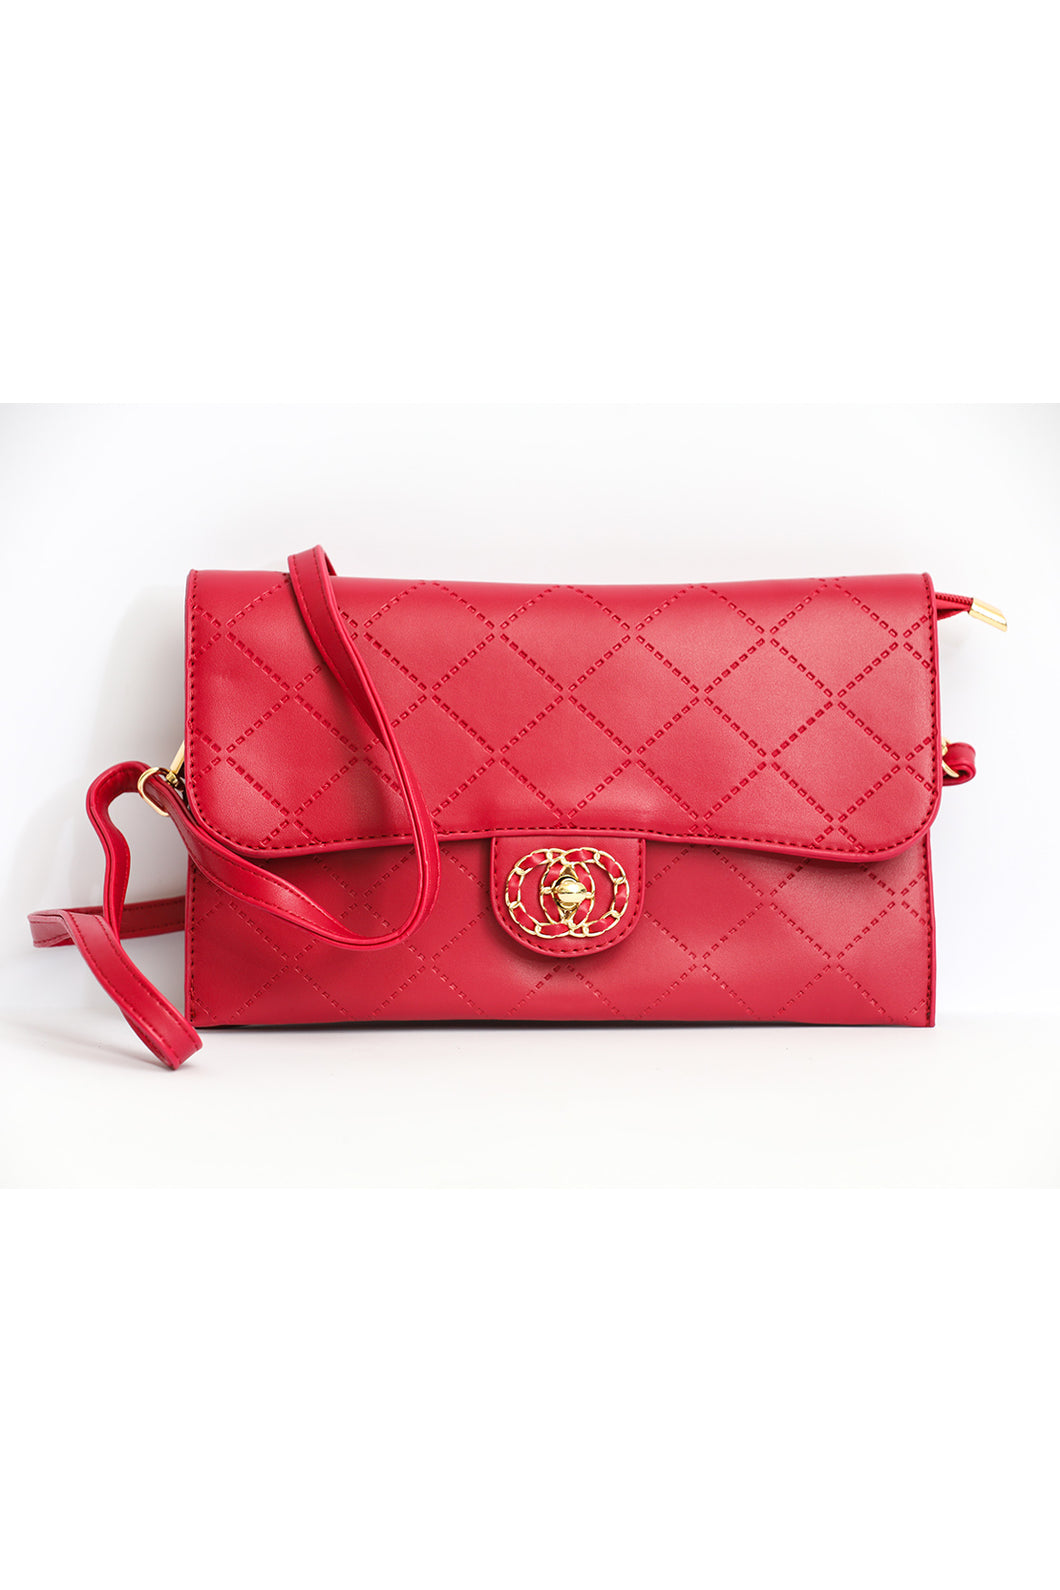 Strapped Embellished Clutch - Red